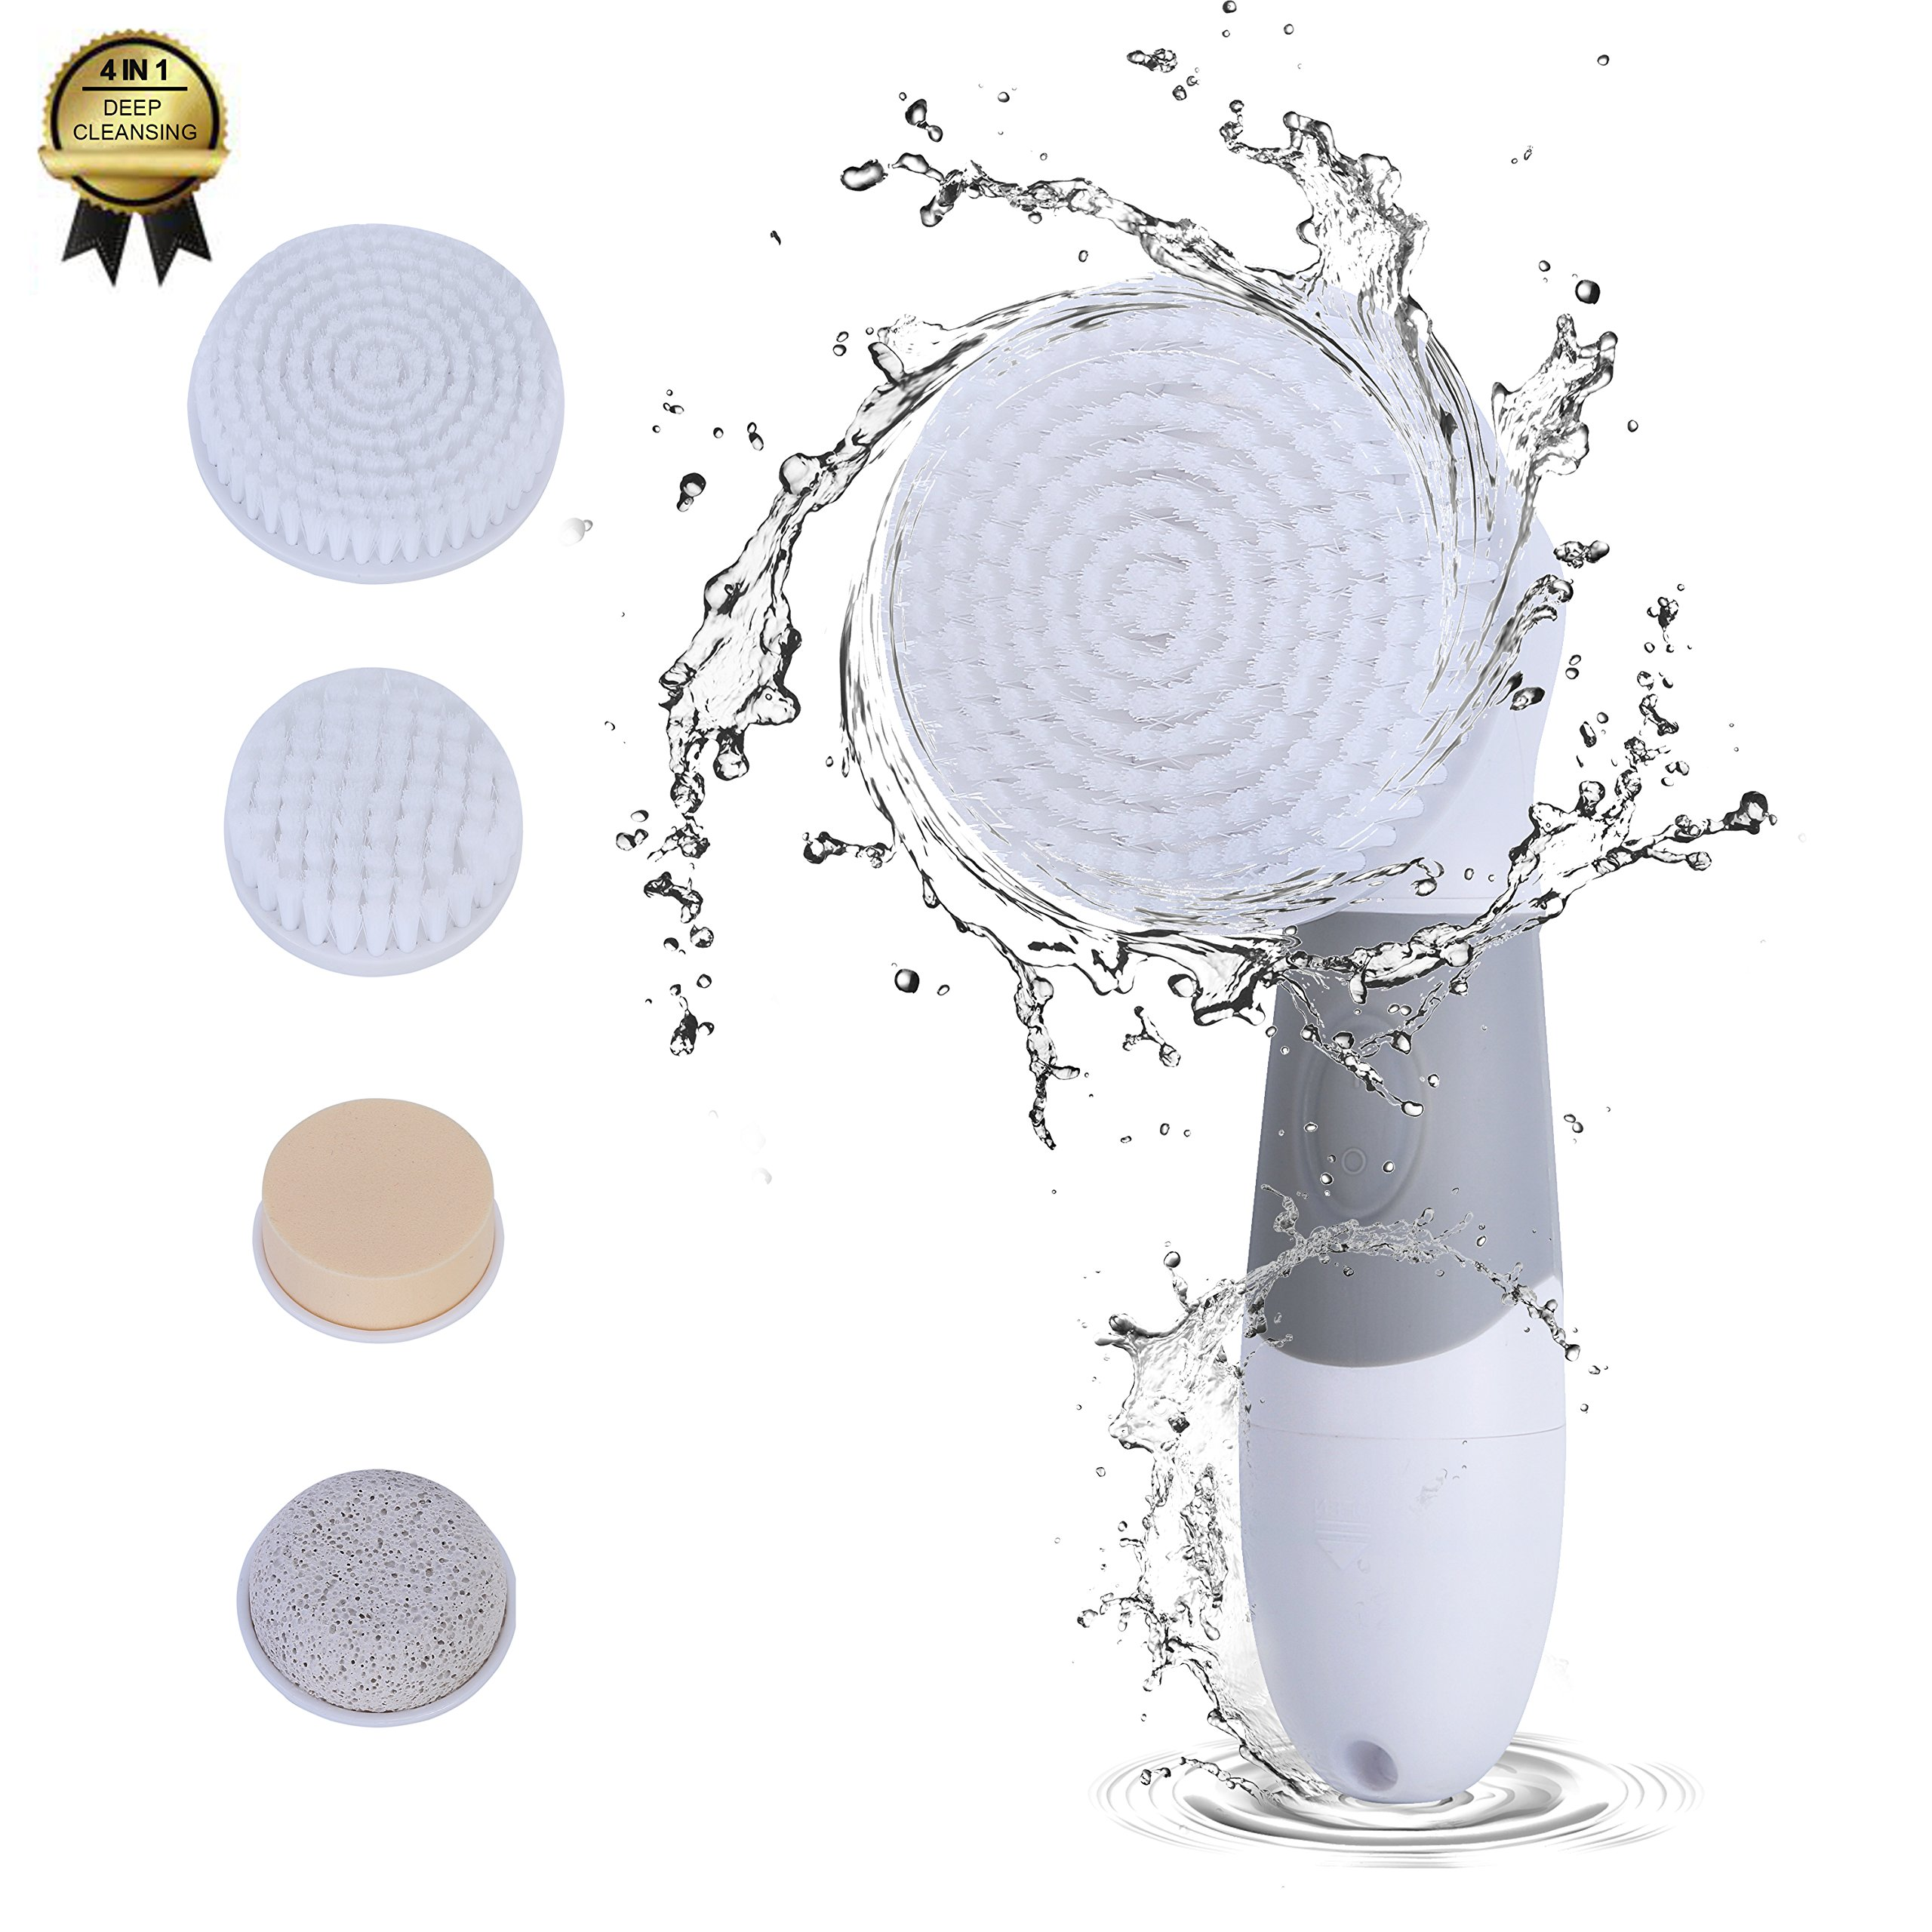 Facial Cleansing Brush Waterproof Electric 4 In 1 FaceBrushSet Deep Cleaner For Exfoliating Removing Blackhead